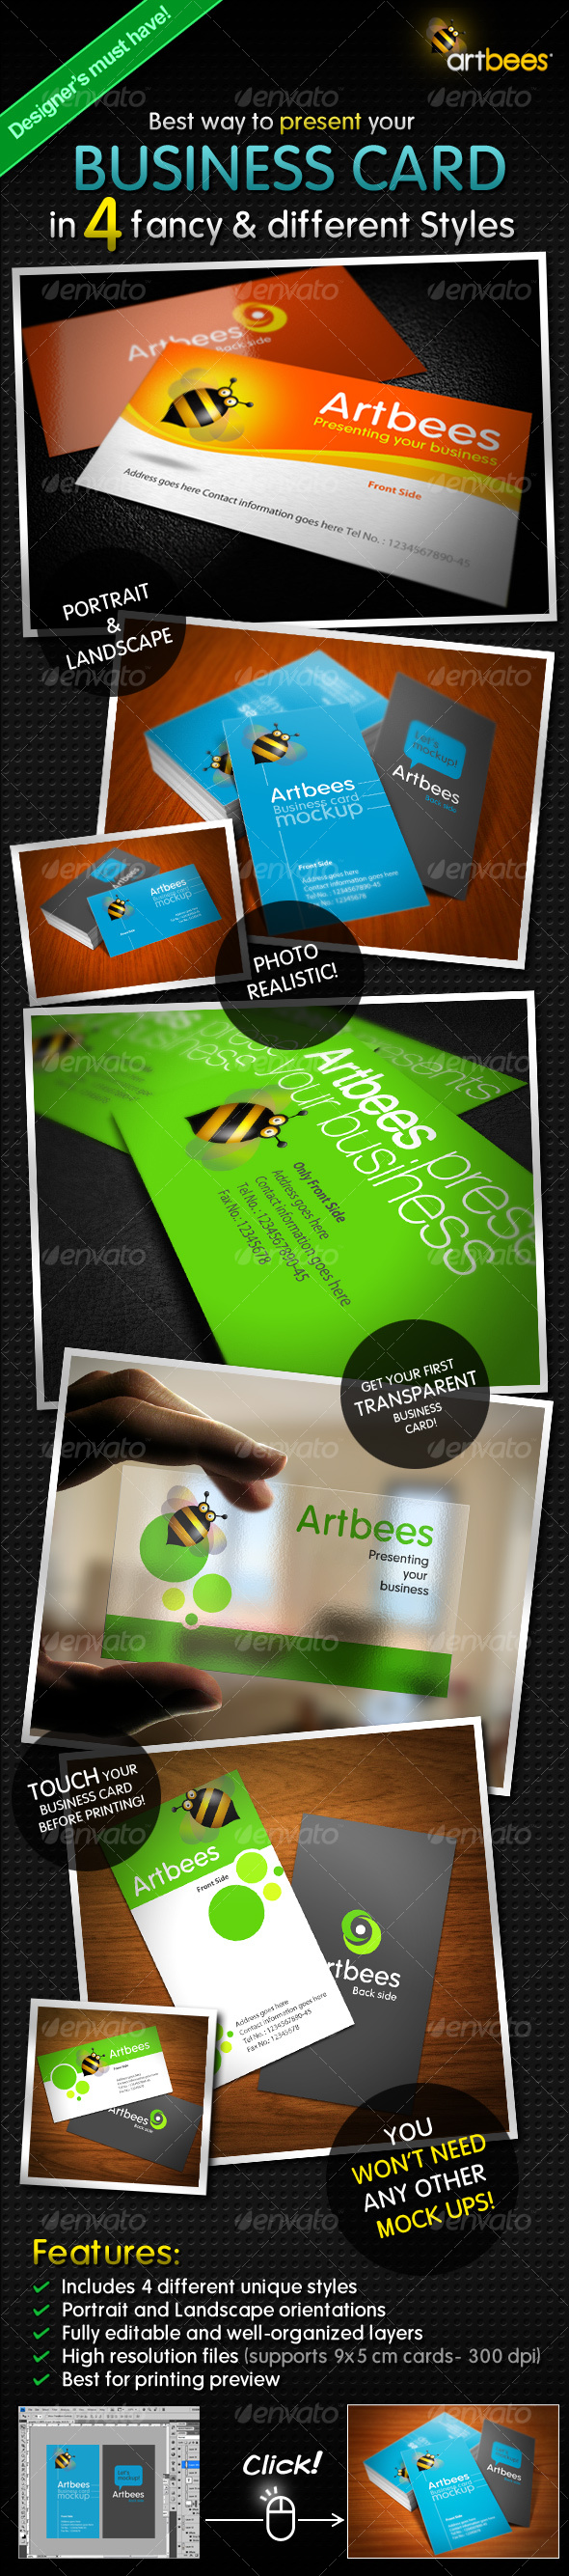 GraphicRiver Great Business Card Mock-up Pack 4 Styles 114970